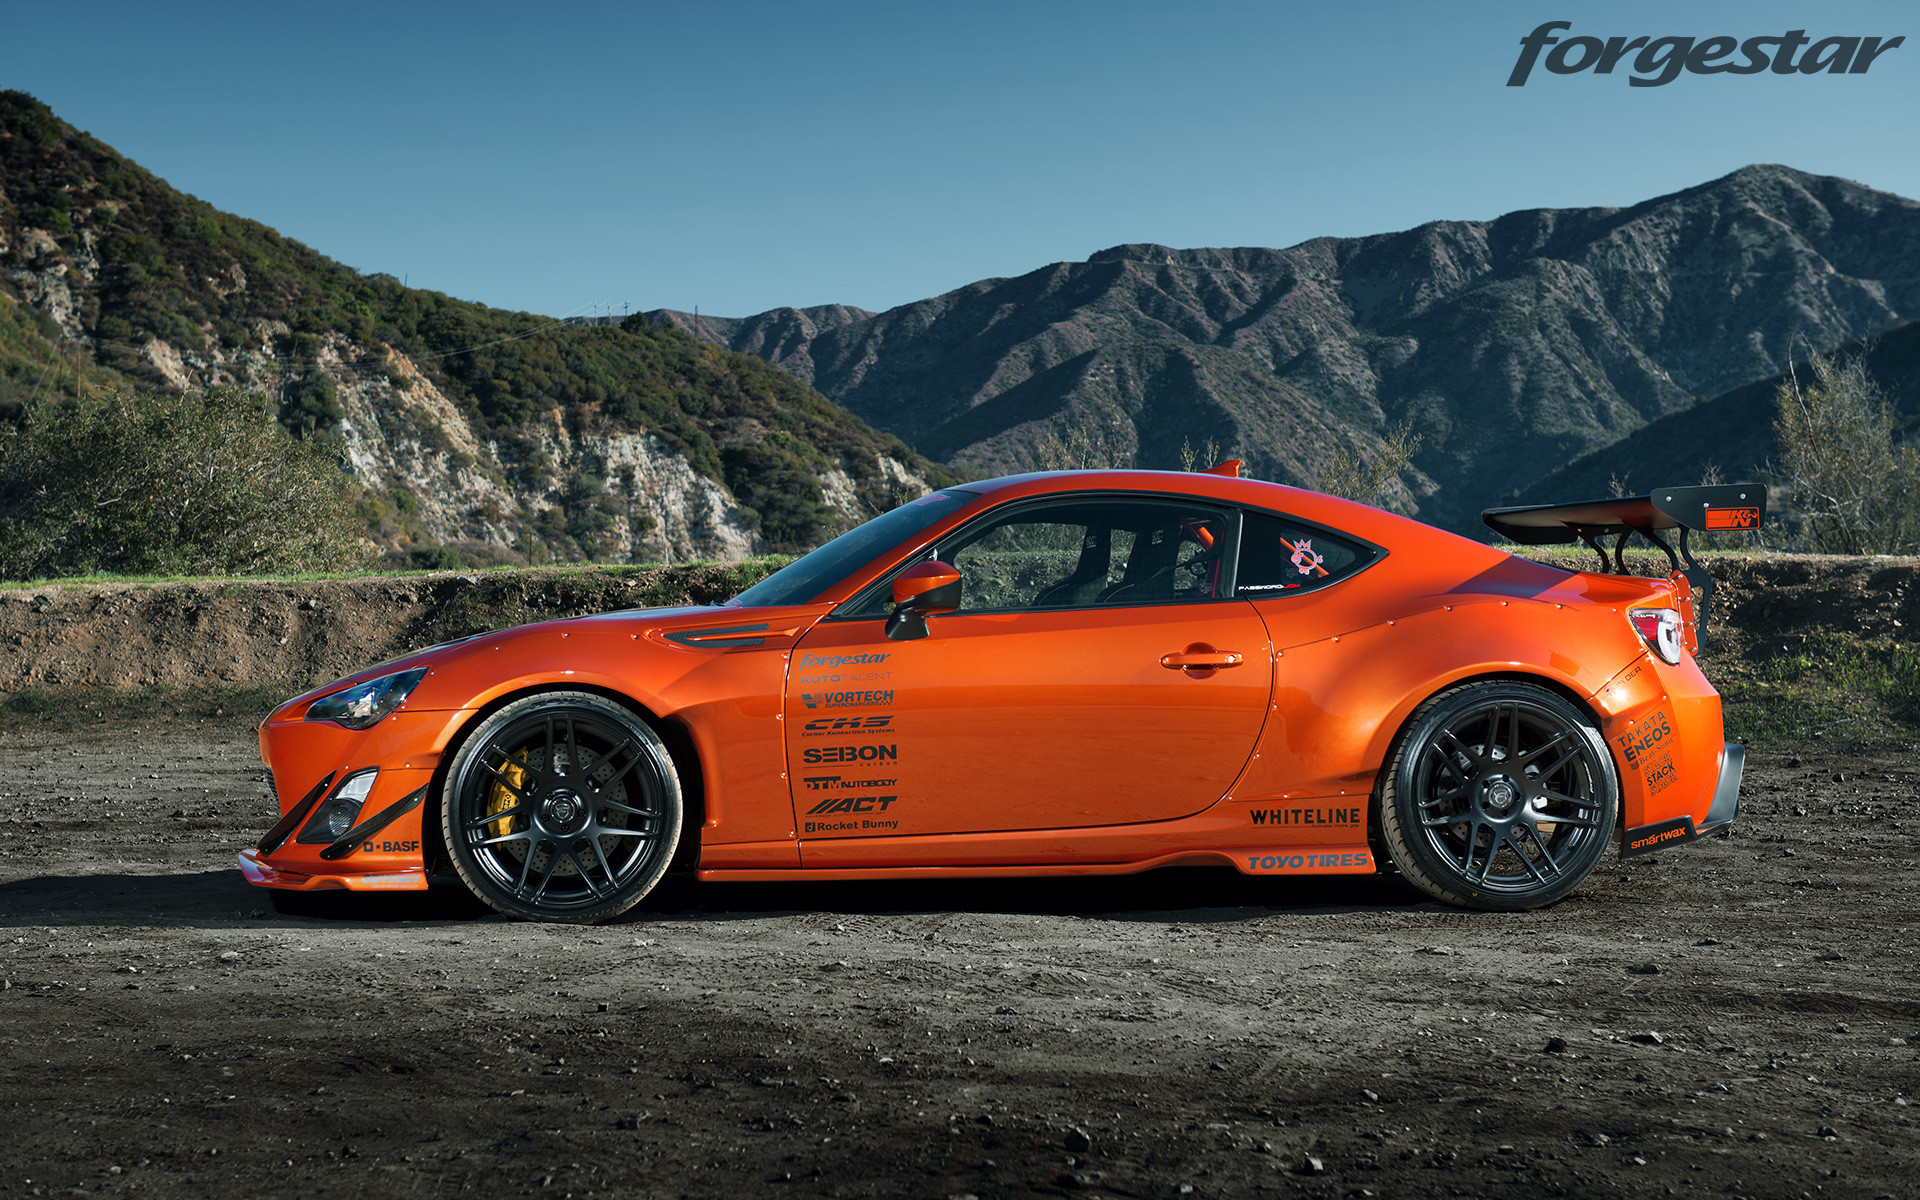 Not 1 but 2 Hot Lava Rocket Bunny Widebody Scion FRS Photoshoot with 1013mm  – Scion FR-S Forum | Subaru BRZ Forum | Toyota 86 GT 86 Forum | AS1 Forum –  …